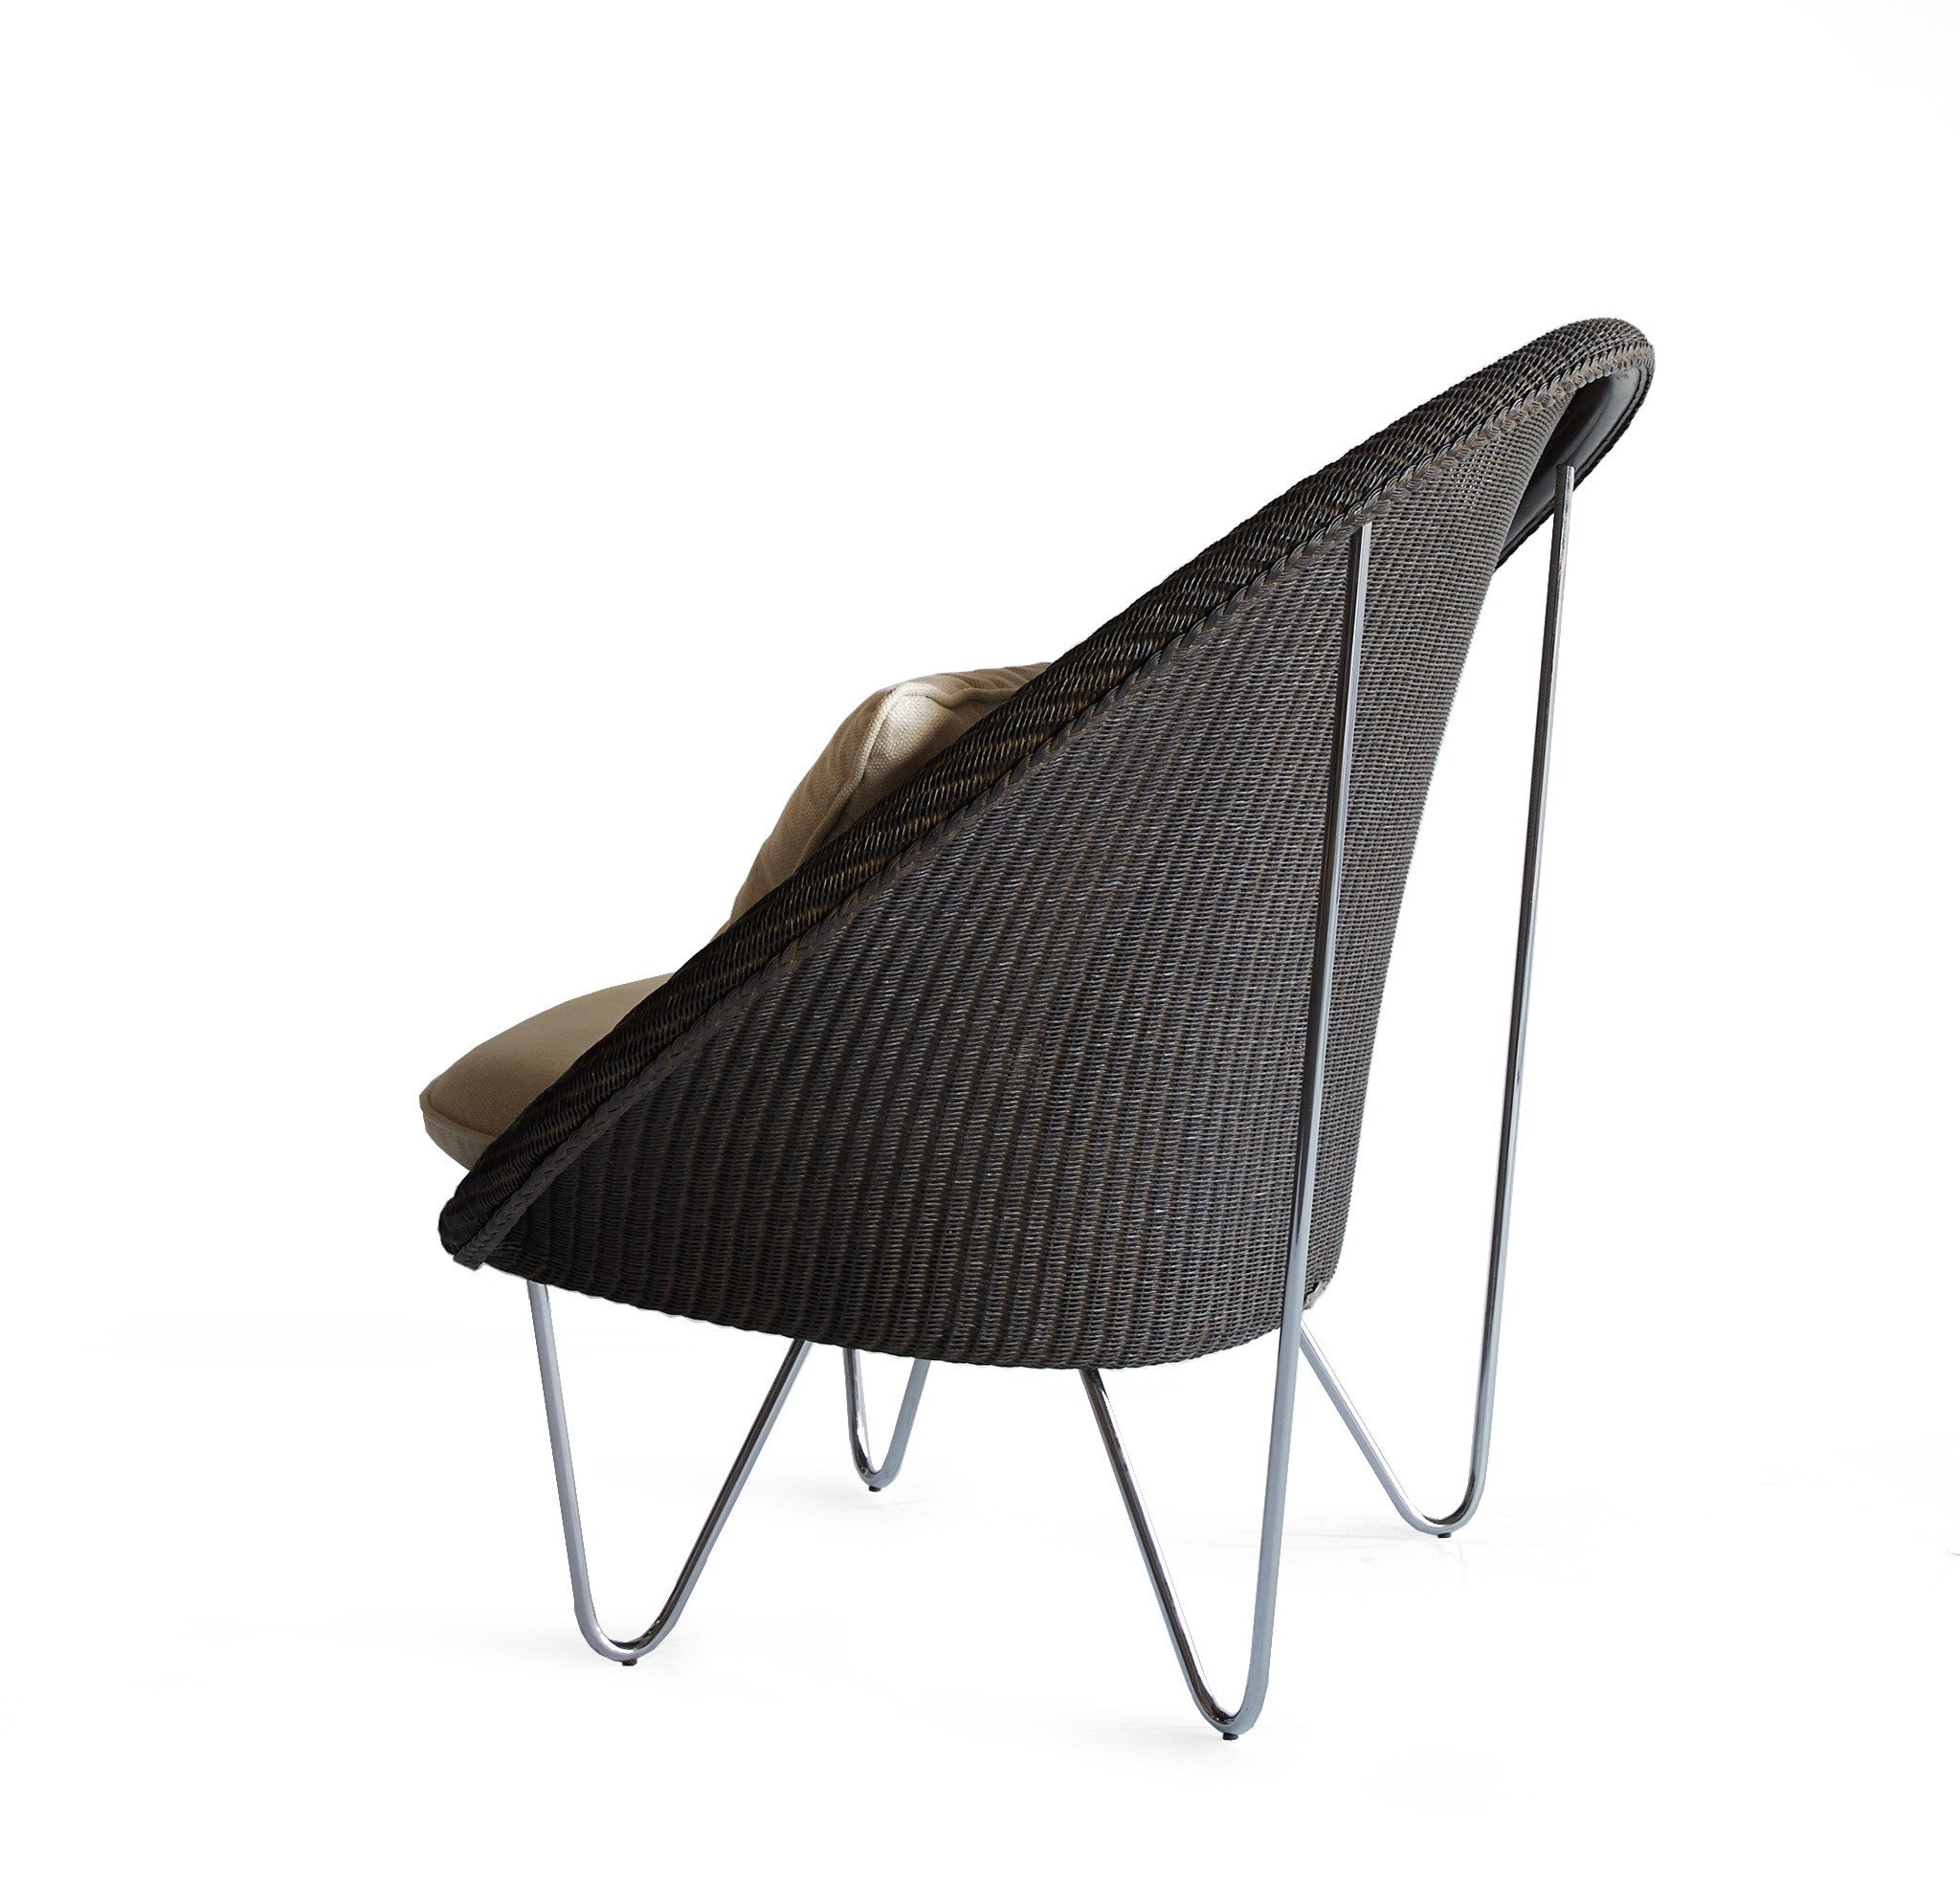 Joe Cocoon | Dark Grey Wash MW-Vincent Sheppard-Originals Furniture - 3